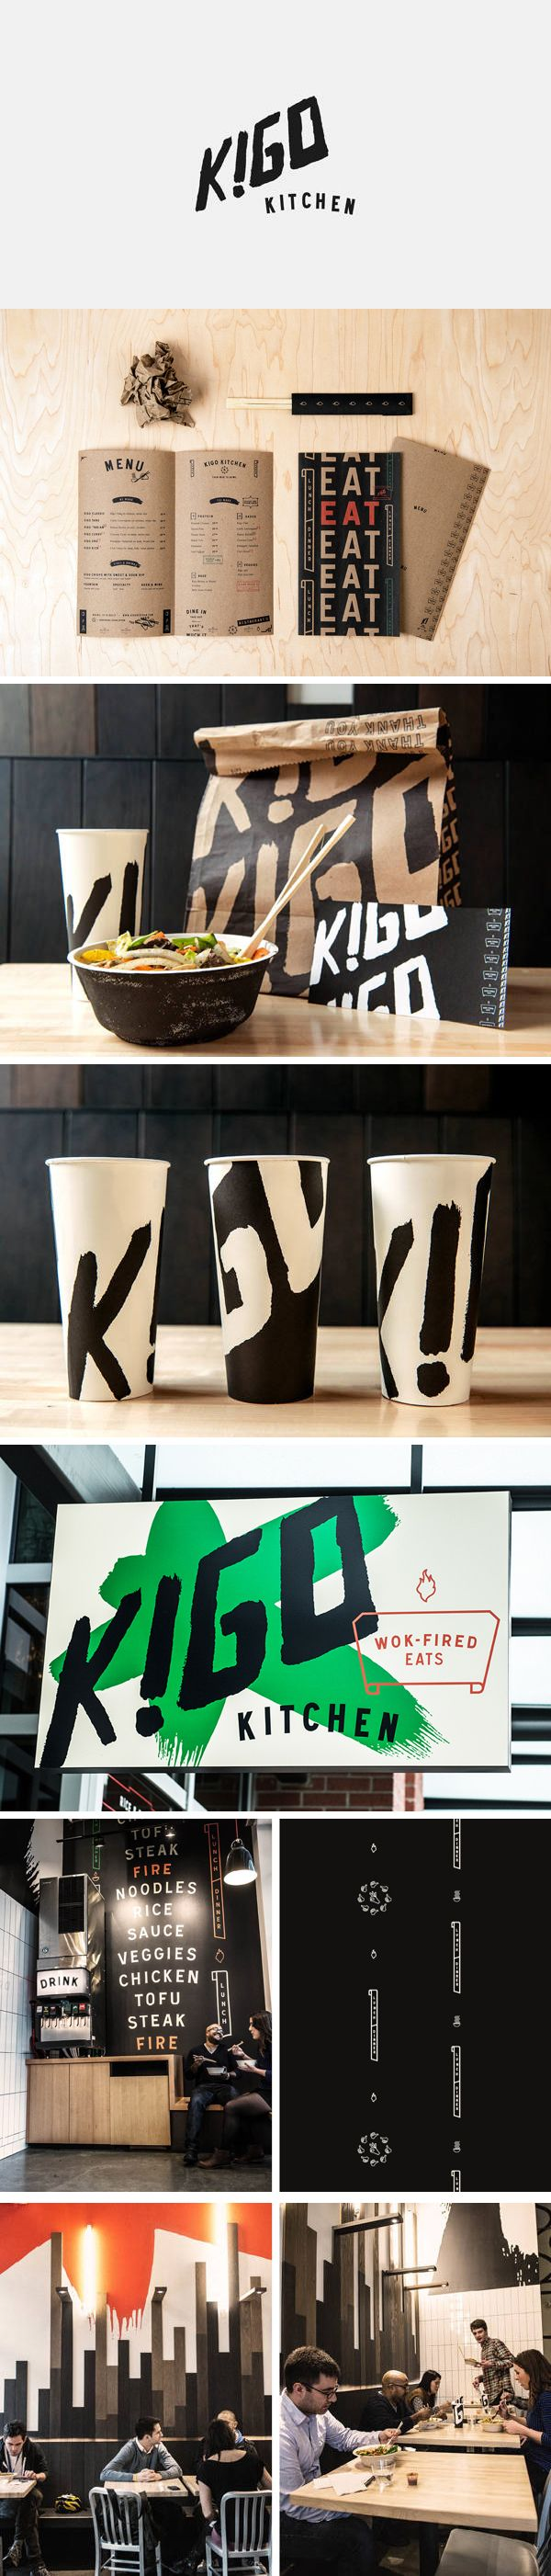 Kigo Kitchen, quick-fire lunch and dinner joint, design by Creature Design Like the to-go stuff!